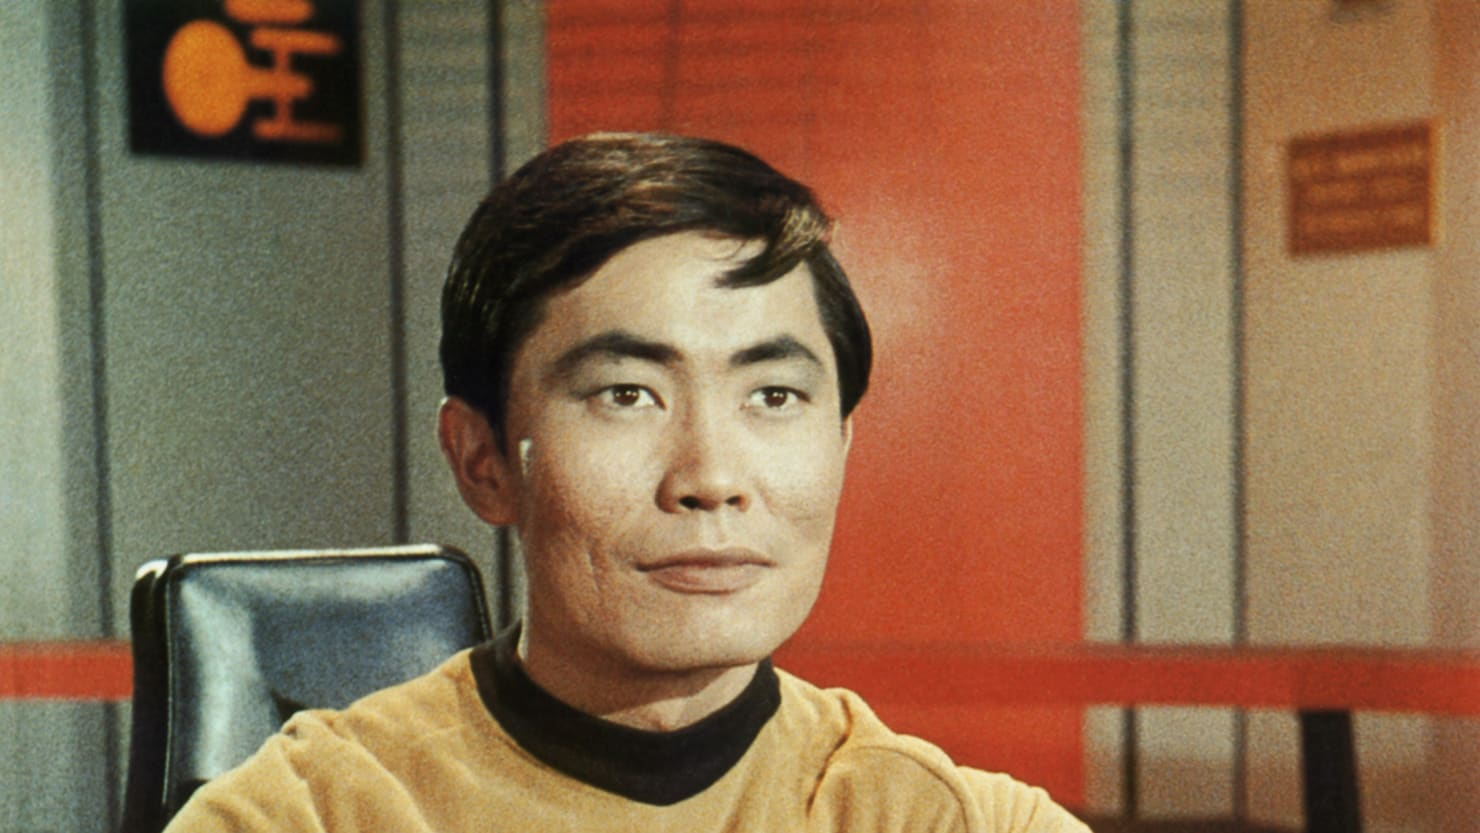 'To Be Takei' Traces George Takei's Journey From Japanese Internment Camps to Cultural Icon